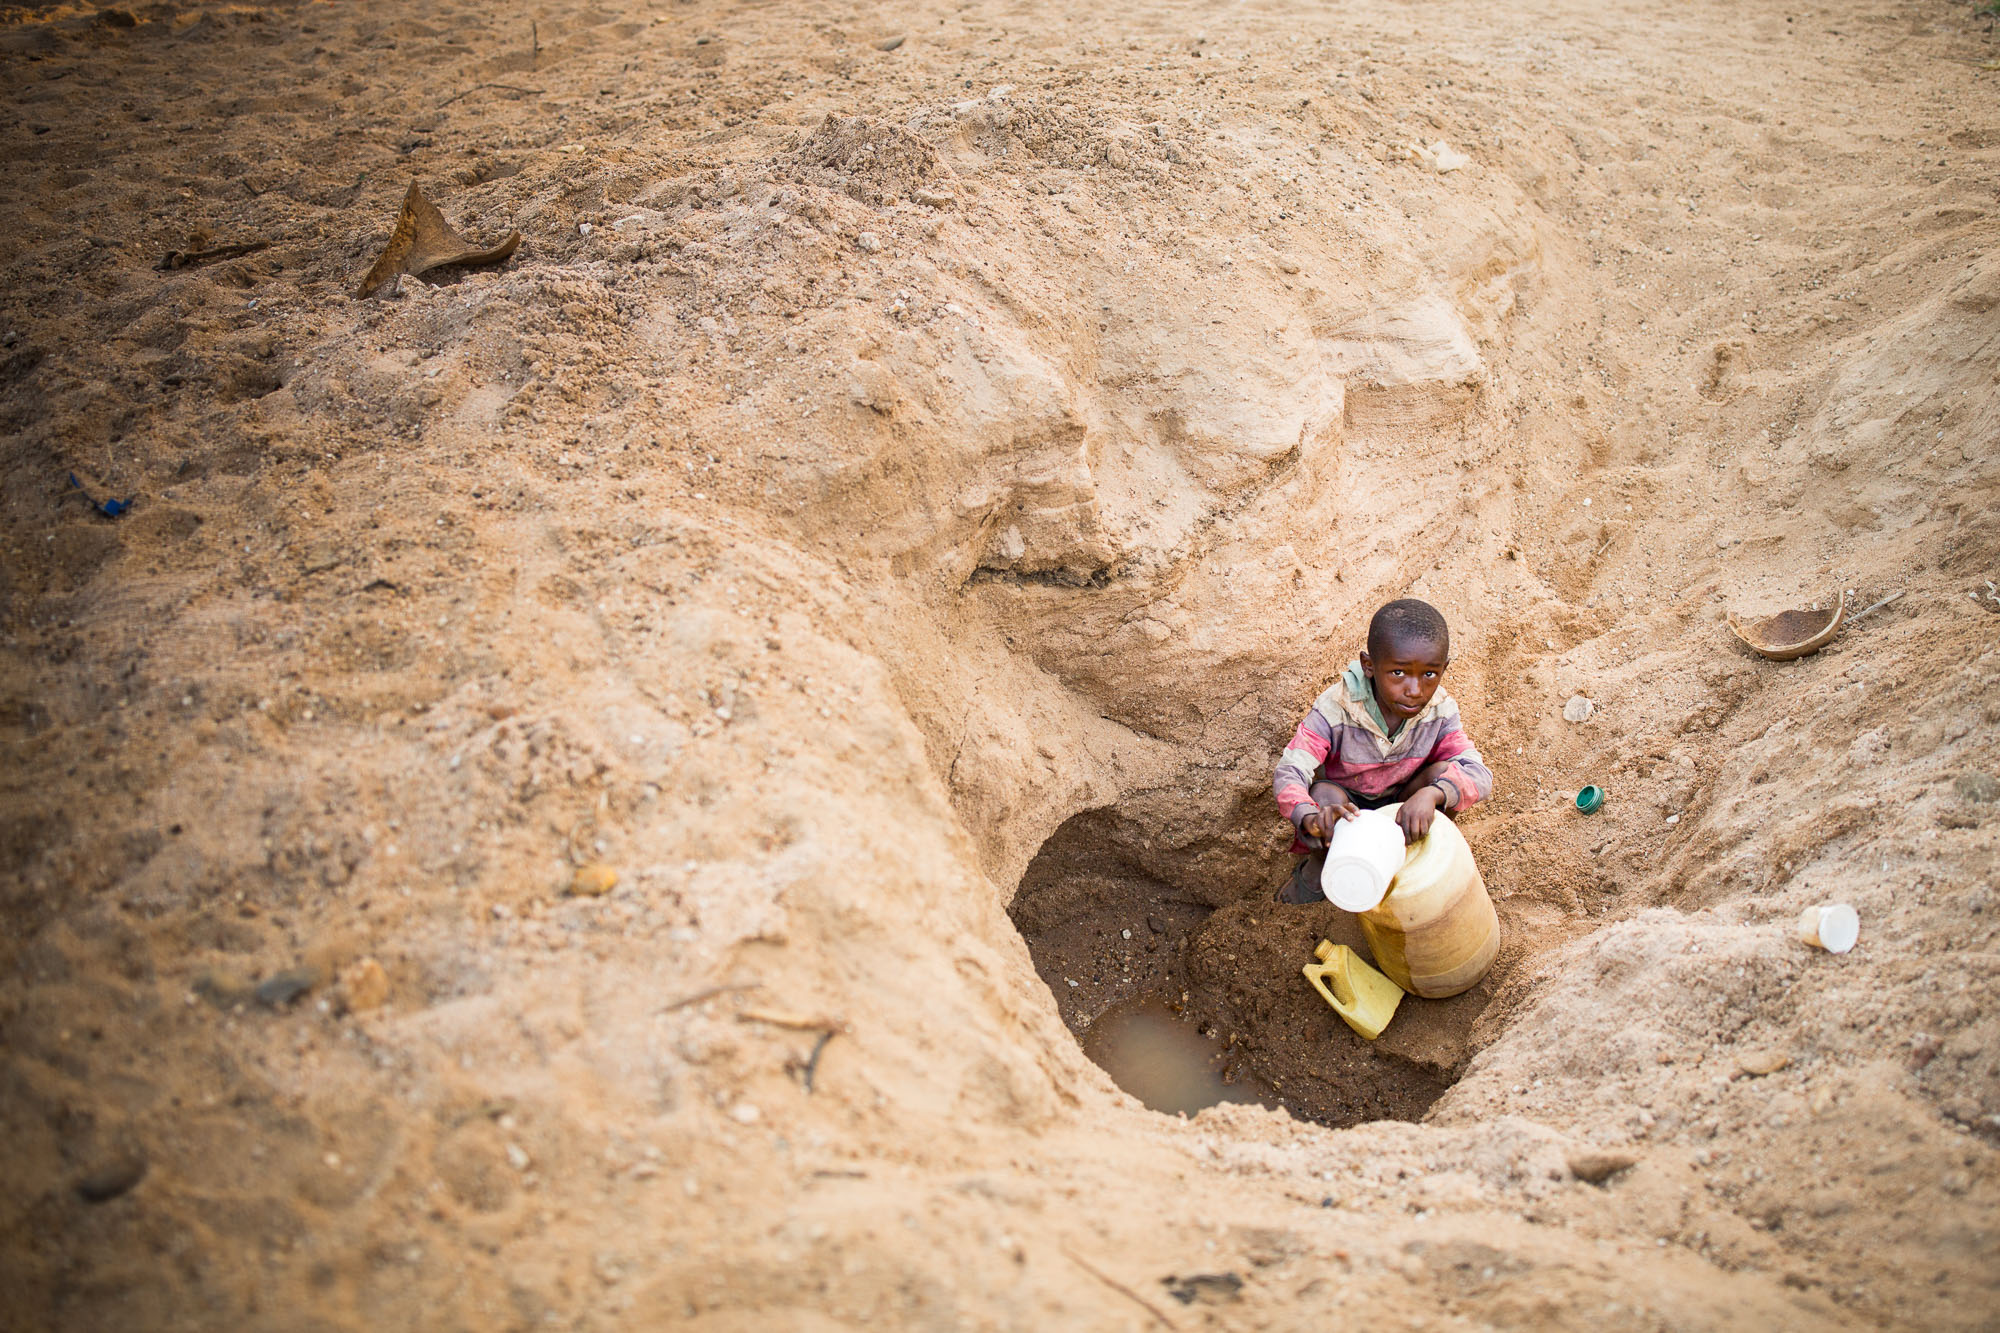 Mwangela (8) digs for water in a dry riverbed in Makueni County, Kenya.